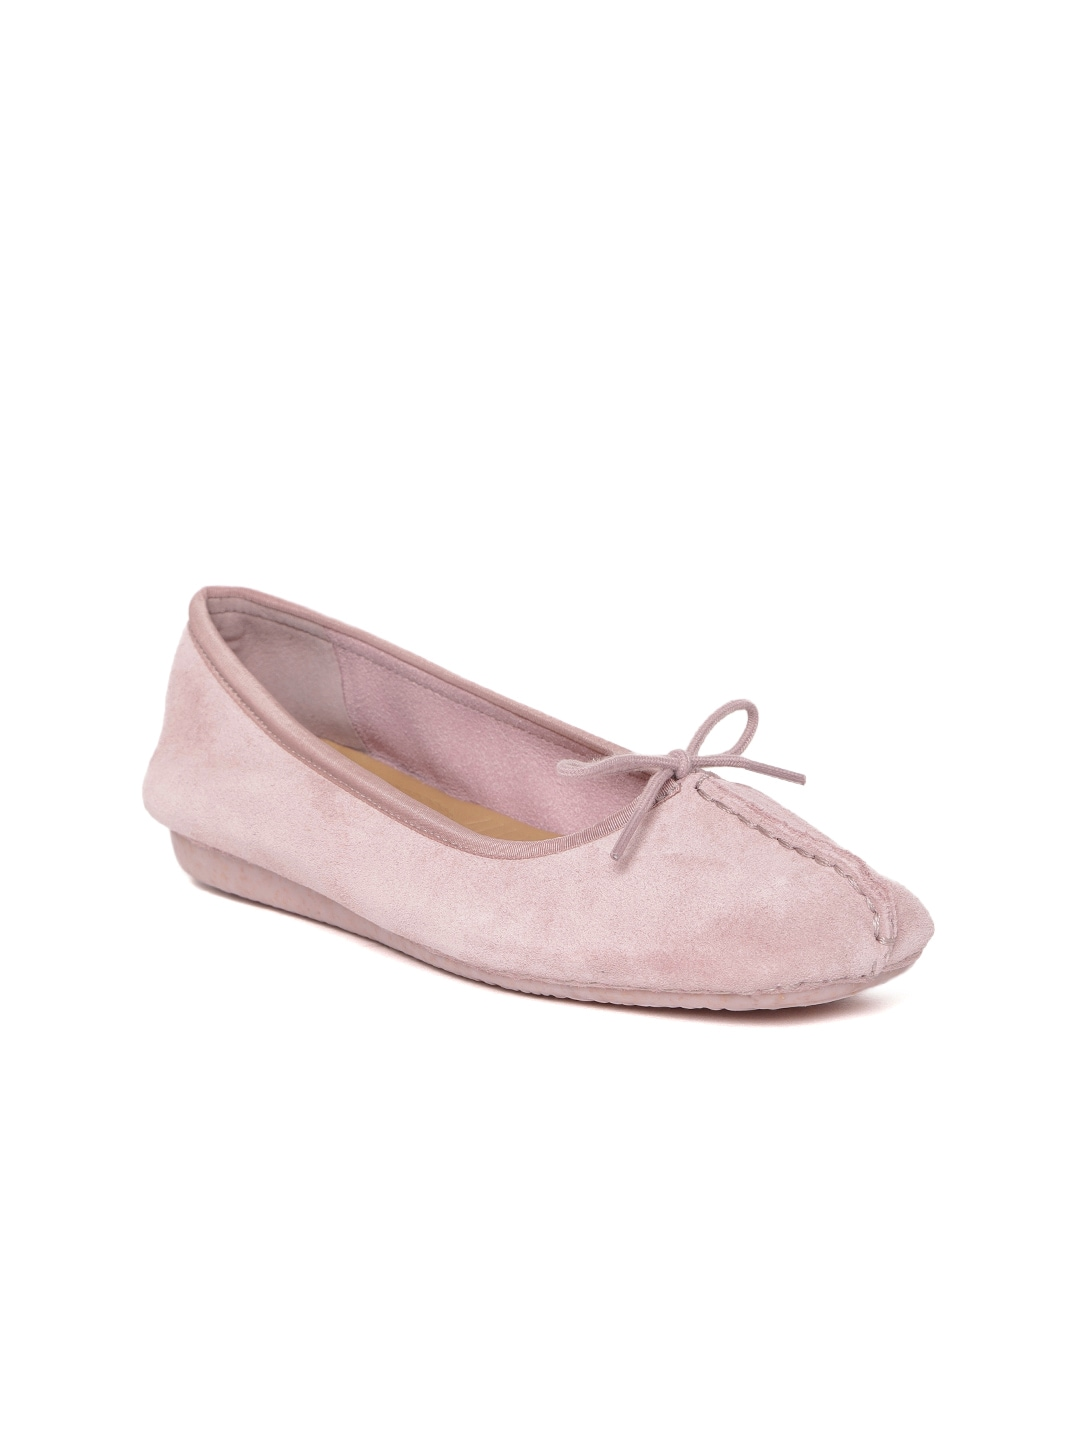 b2f85b0452a30 Women s Clarks Shoes - Buy Clarks Shoes for Women Online in India